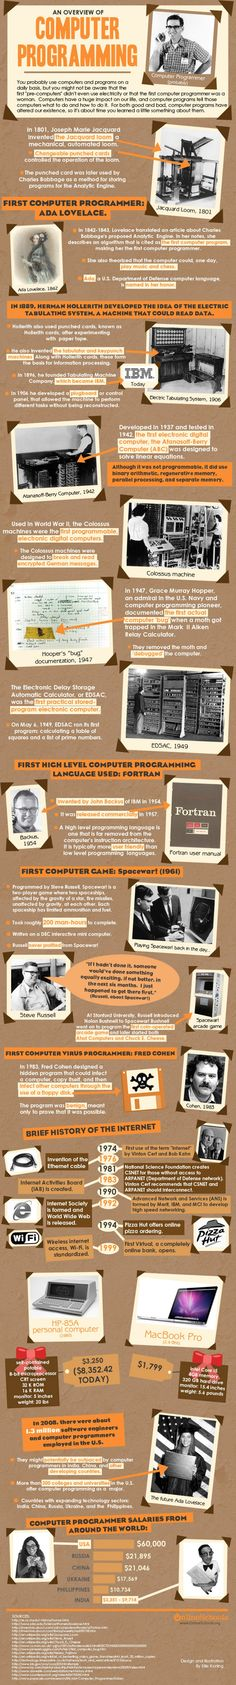 We are using computer and their programs regularly, however, we might not be aware of their history. Sharing knowledge about computer programming, here the basics of history behind coding and other things are presented in the graphical form. Computer Technology, Computer Science, Science And Technology, Computer Art, Computer Tips, Computer Lessons, Computer Programming Languages, C Programming, Python Programming